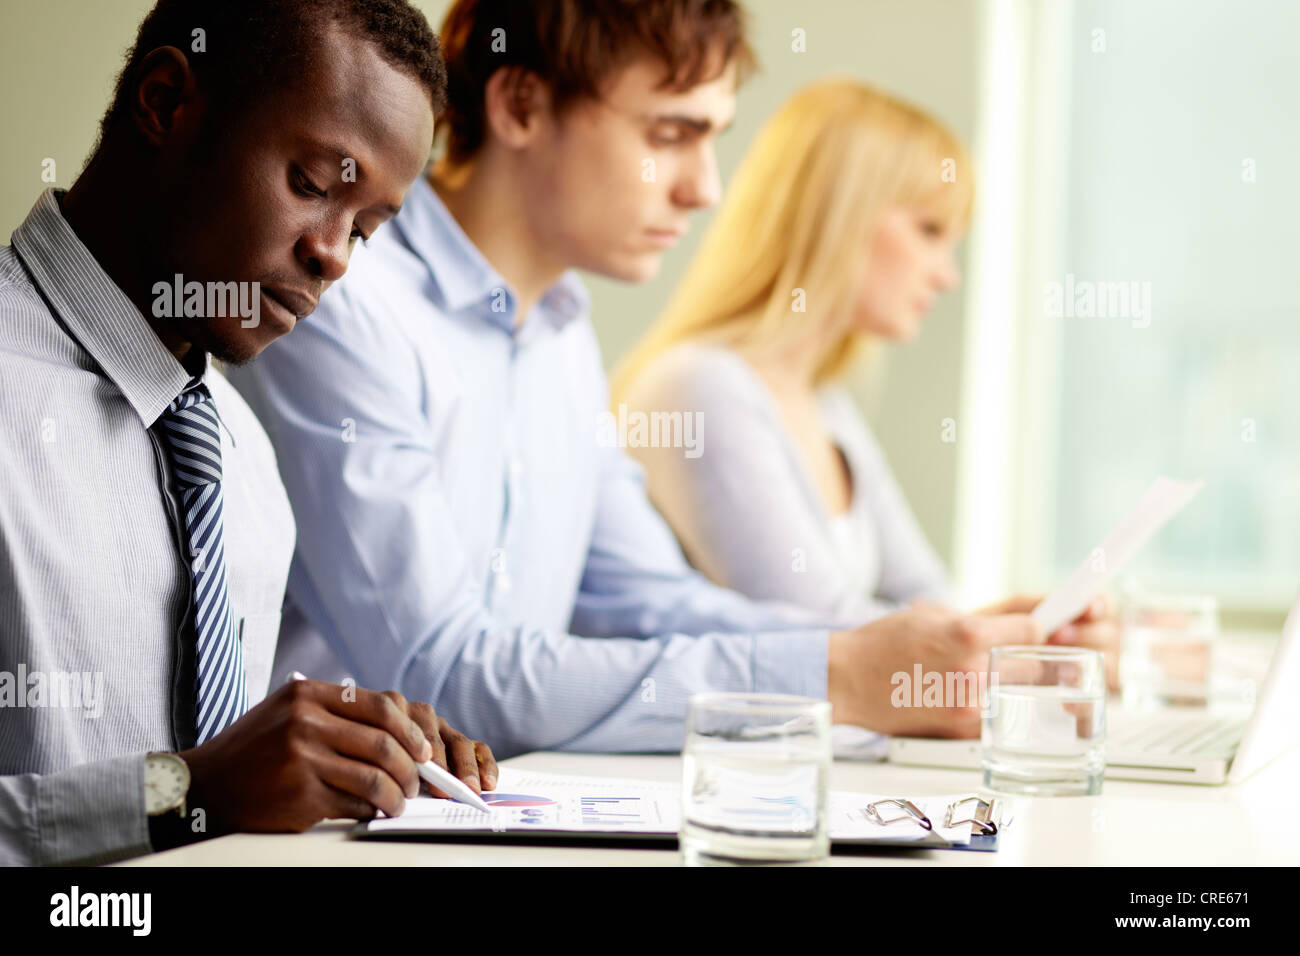 Group of business people taking their everyday work seriously - Stock Image